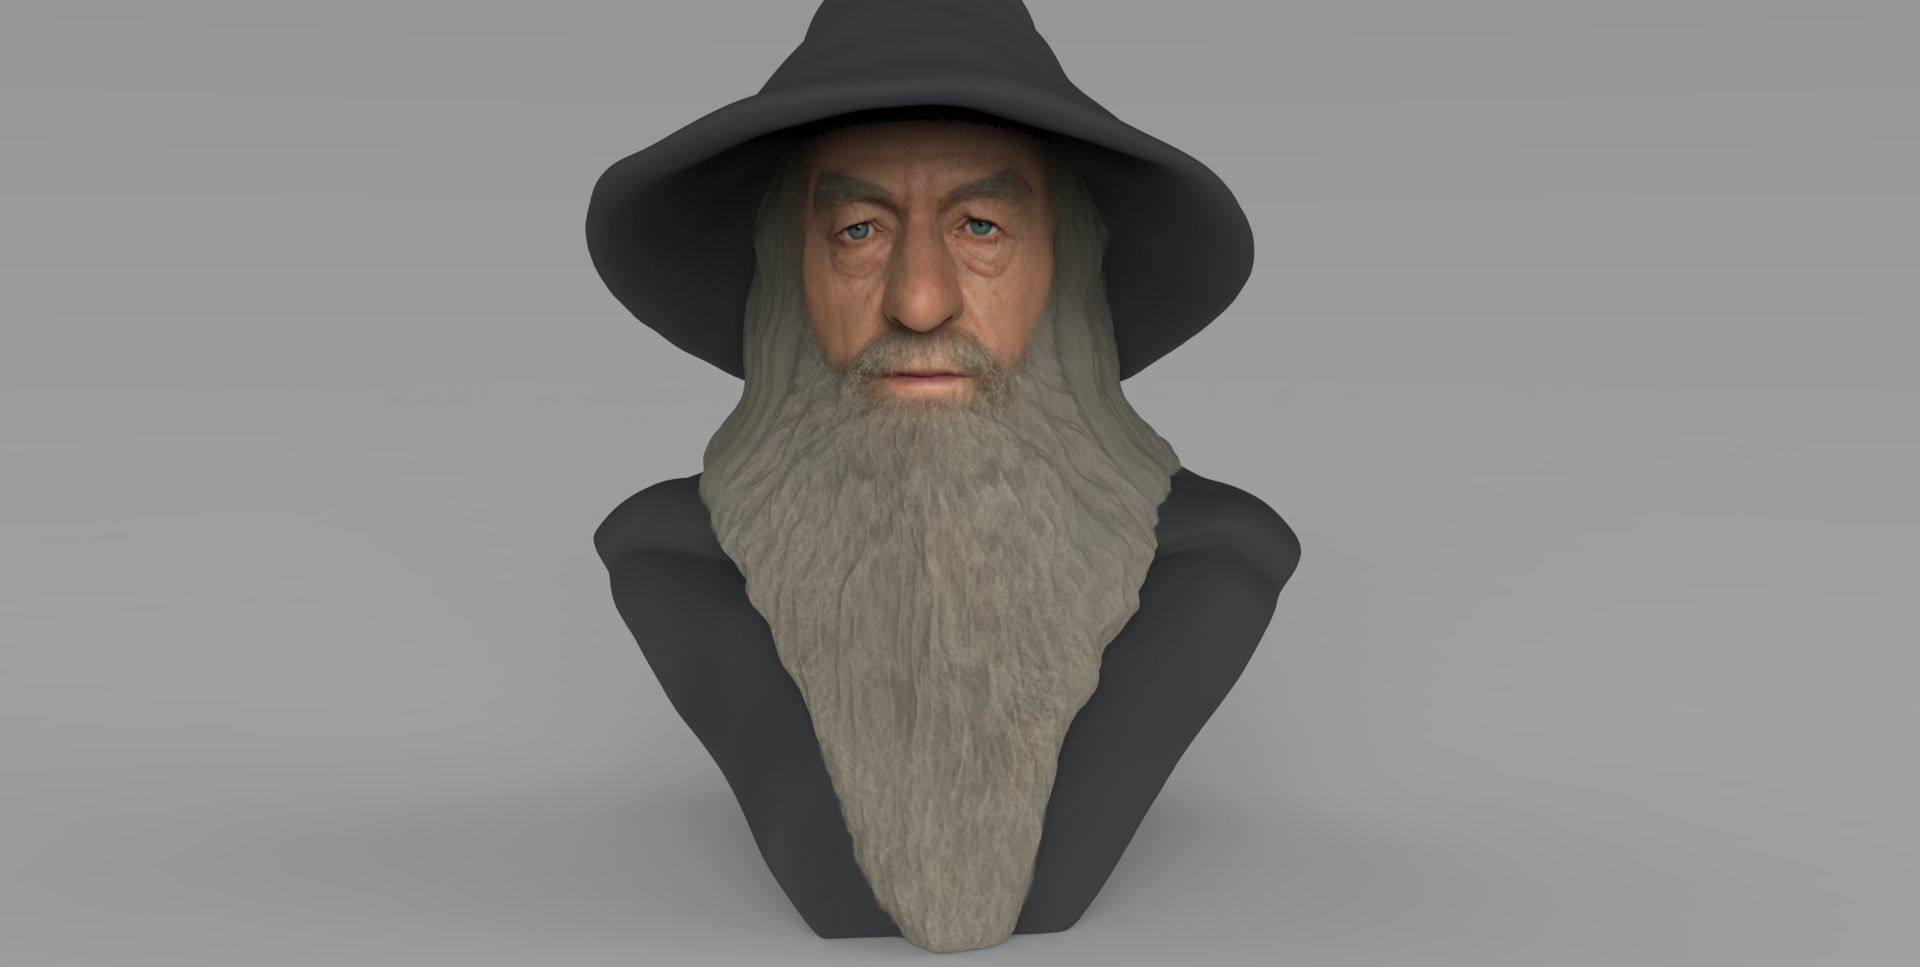 Gandalf Lord of the Rings bust ready for full color 3D printing